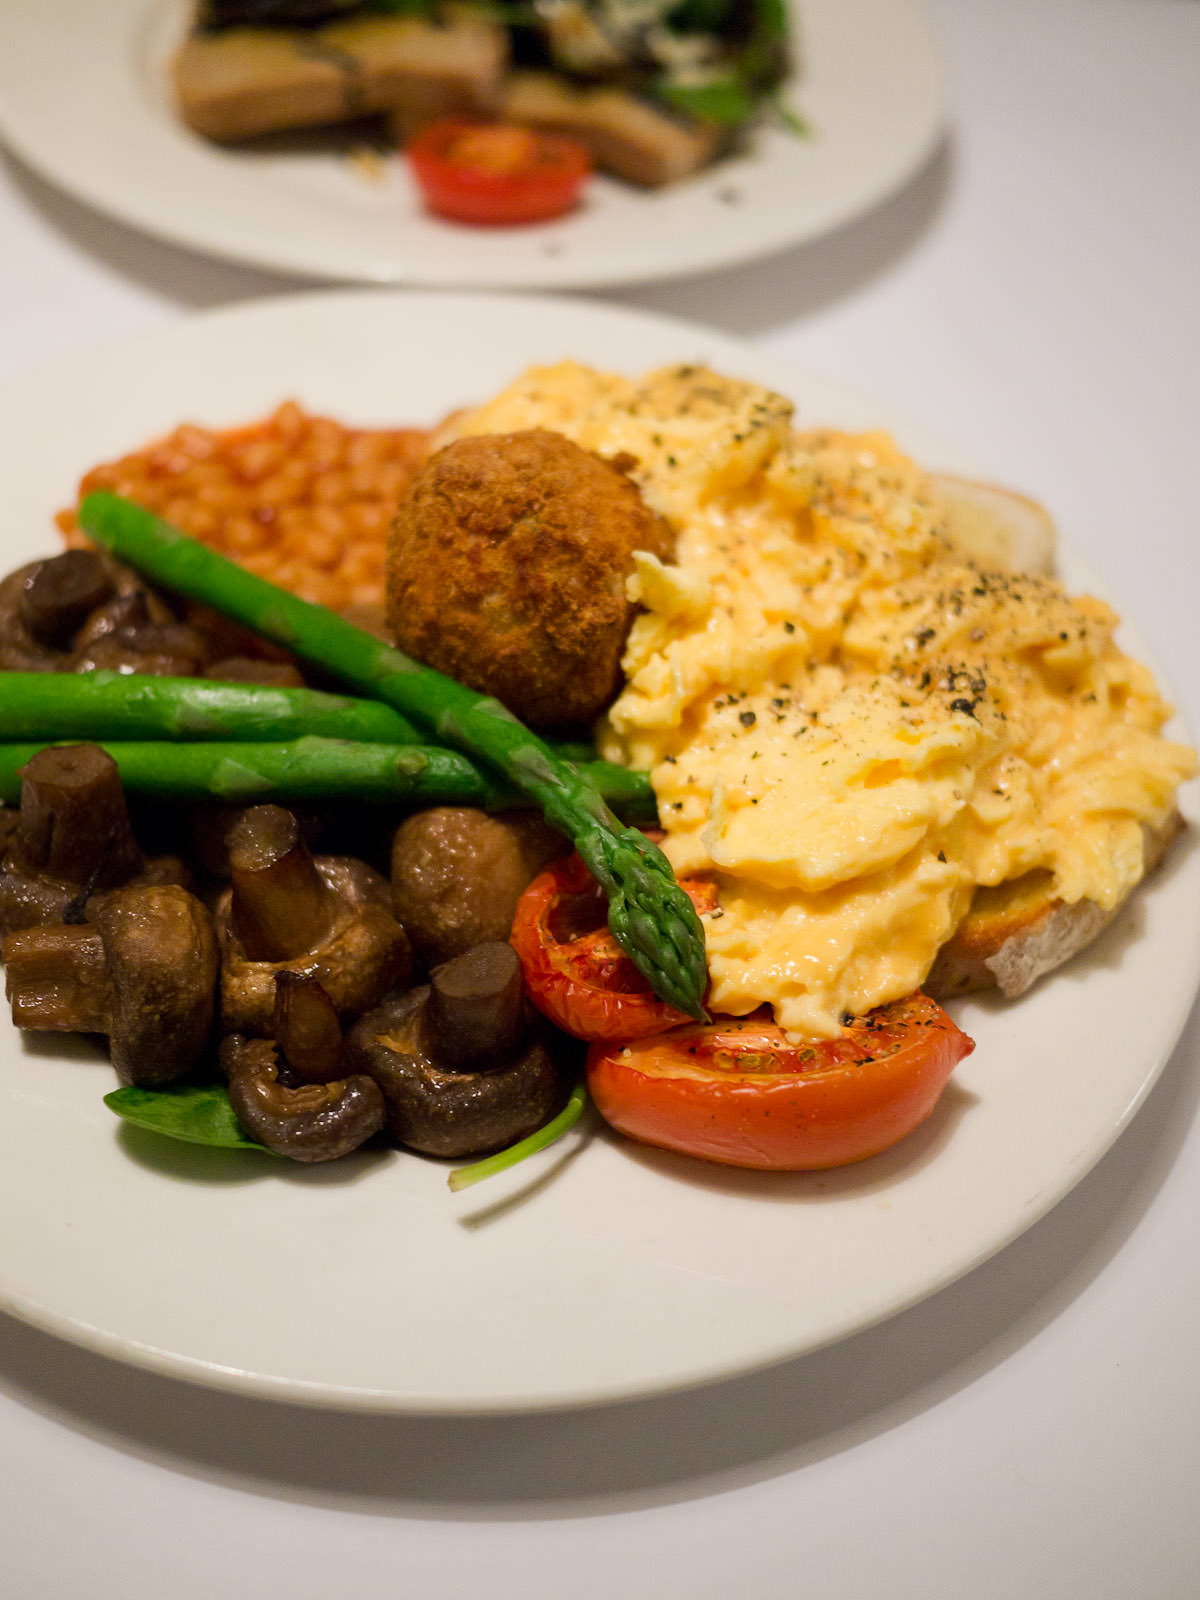 Vegetarian full breakfast - eggs, potato, tomato, baked beans, asparagus, spinach, mushrooms (AU$19.50)